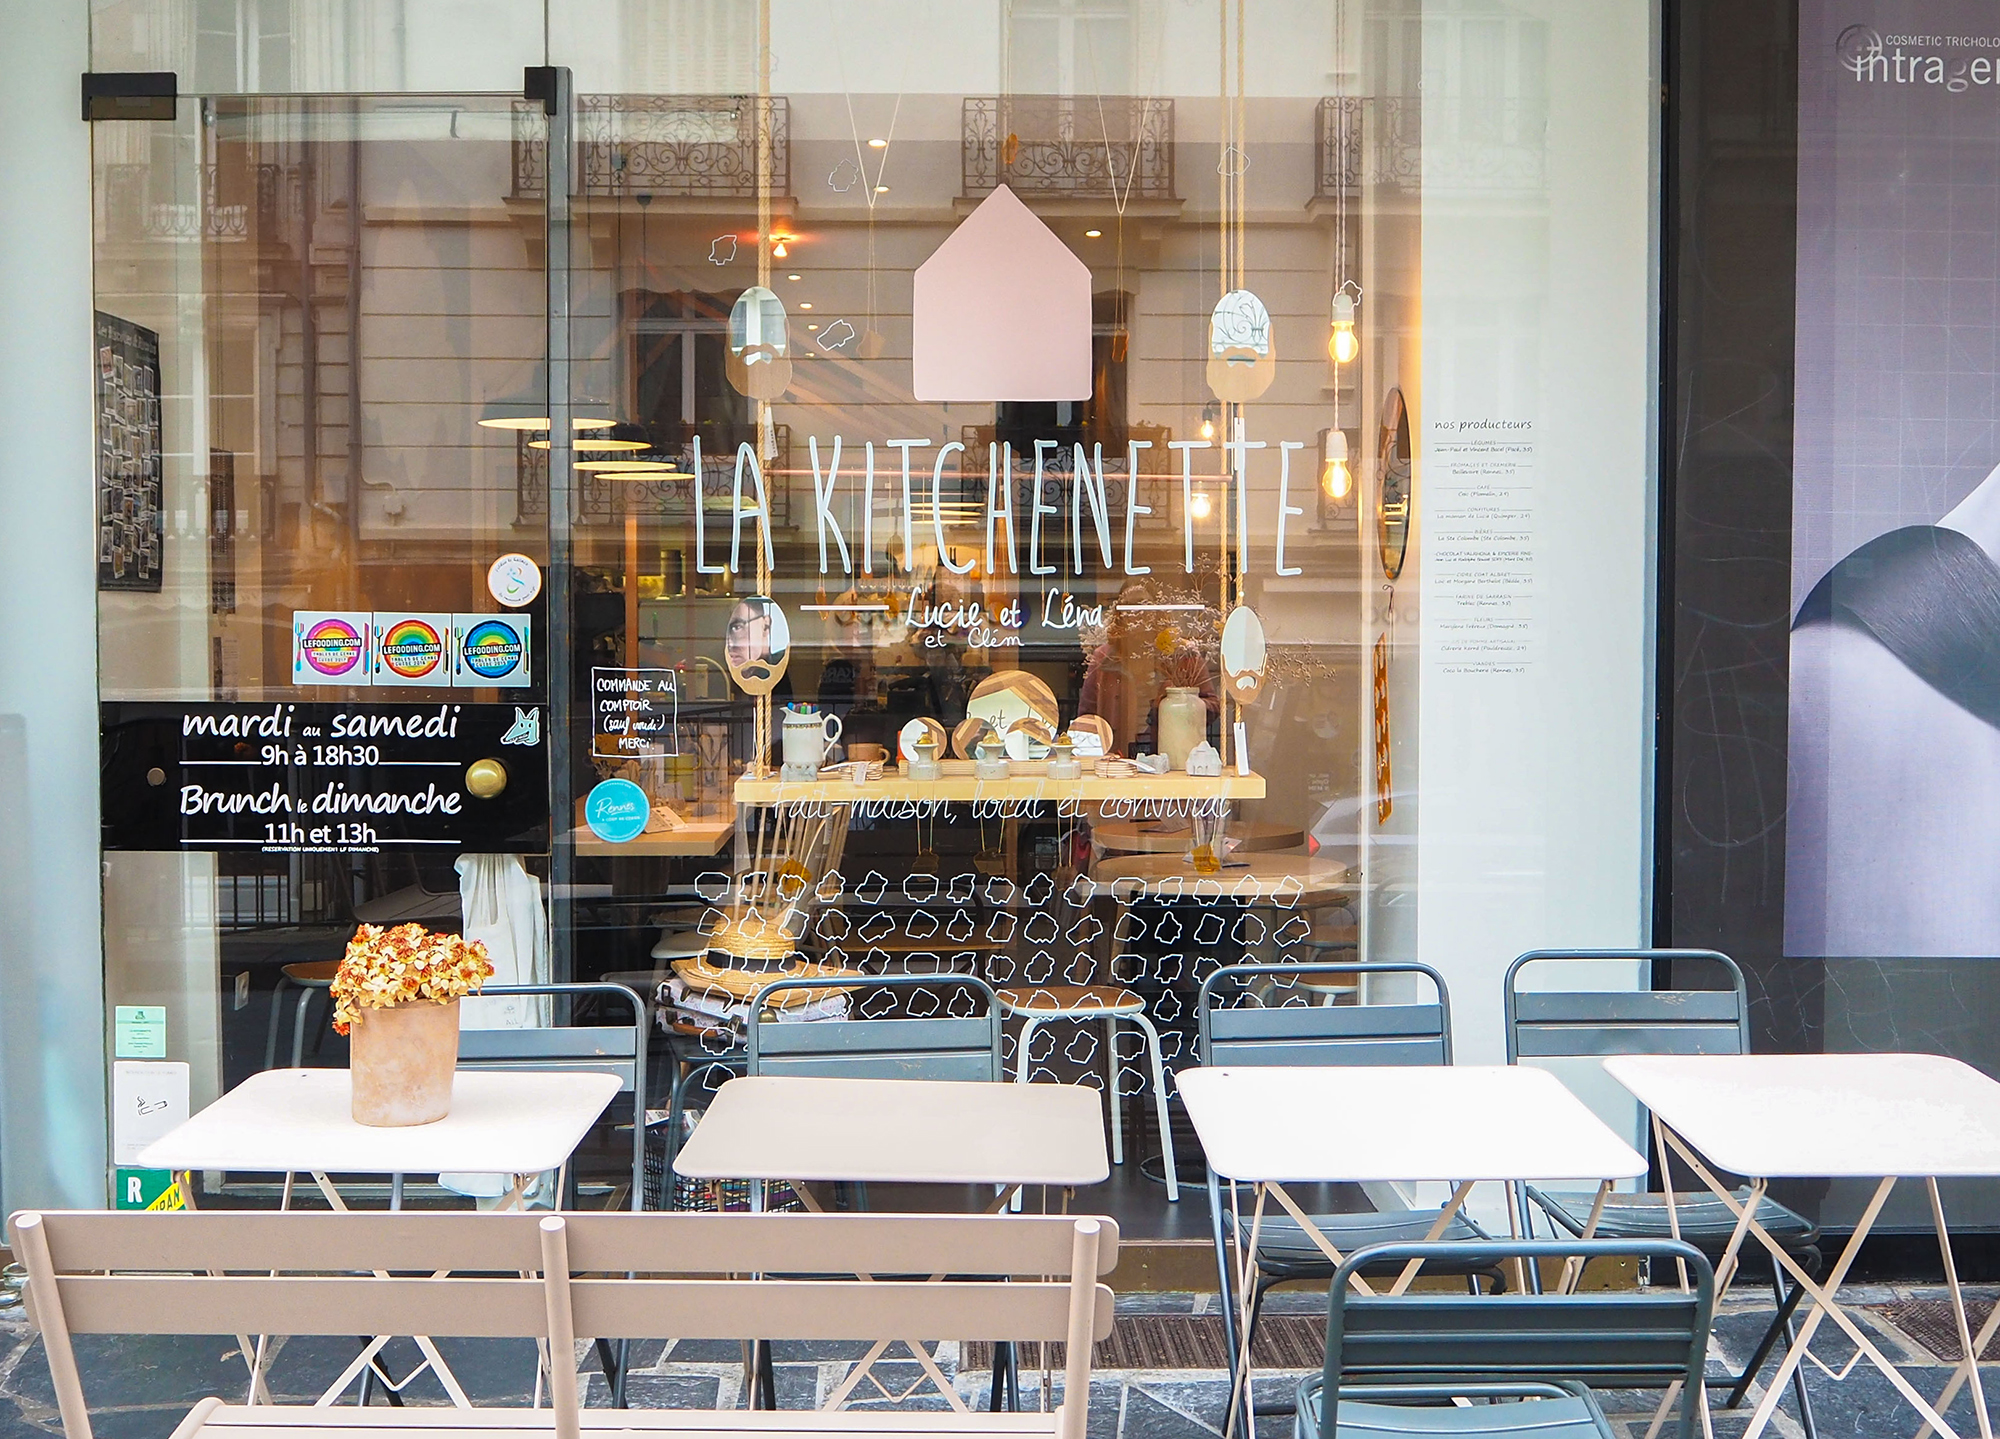 La kitchenette - coffee shop et restaurant bonne adresse rennes